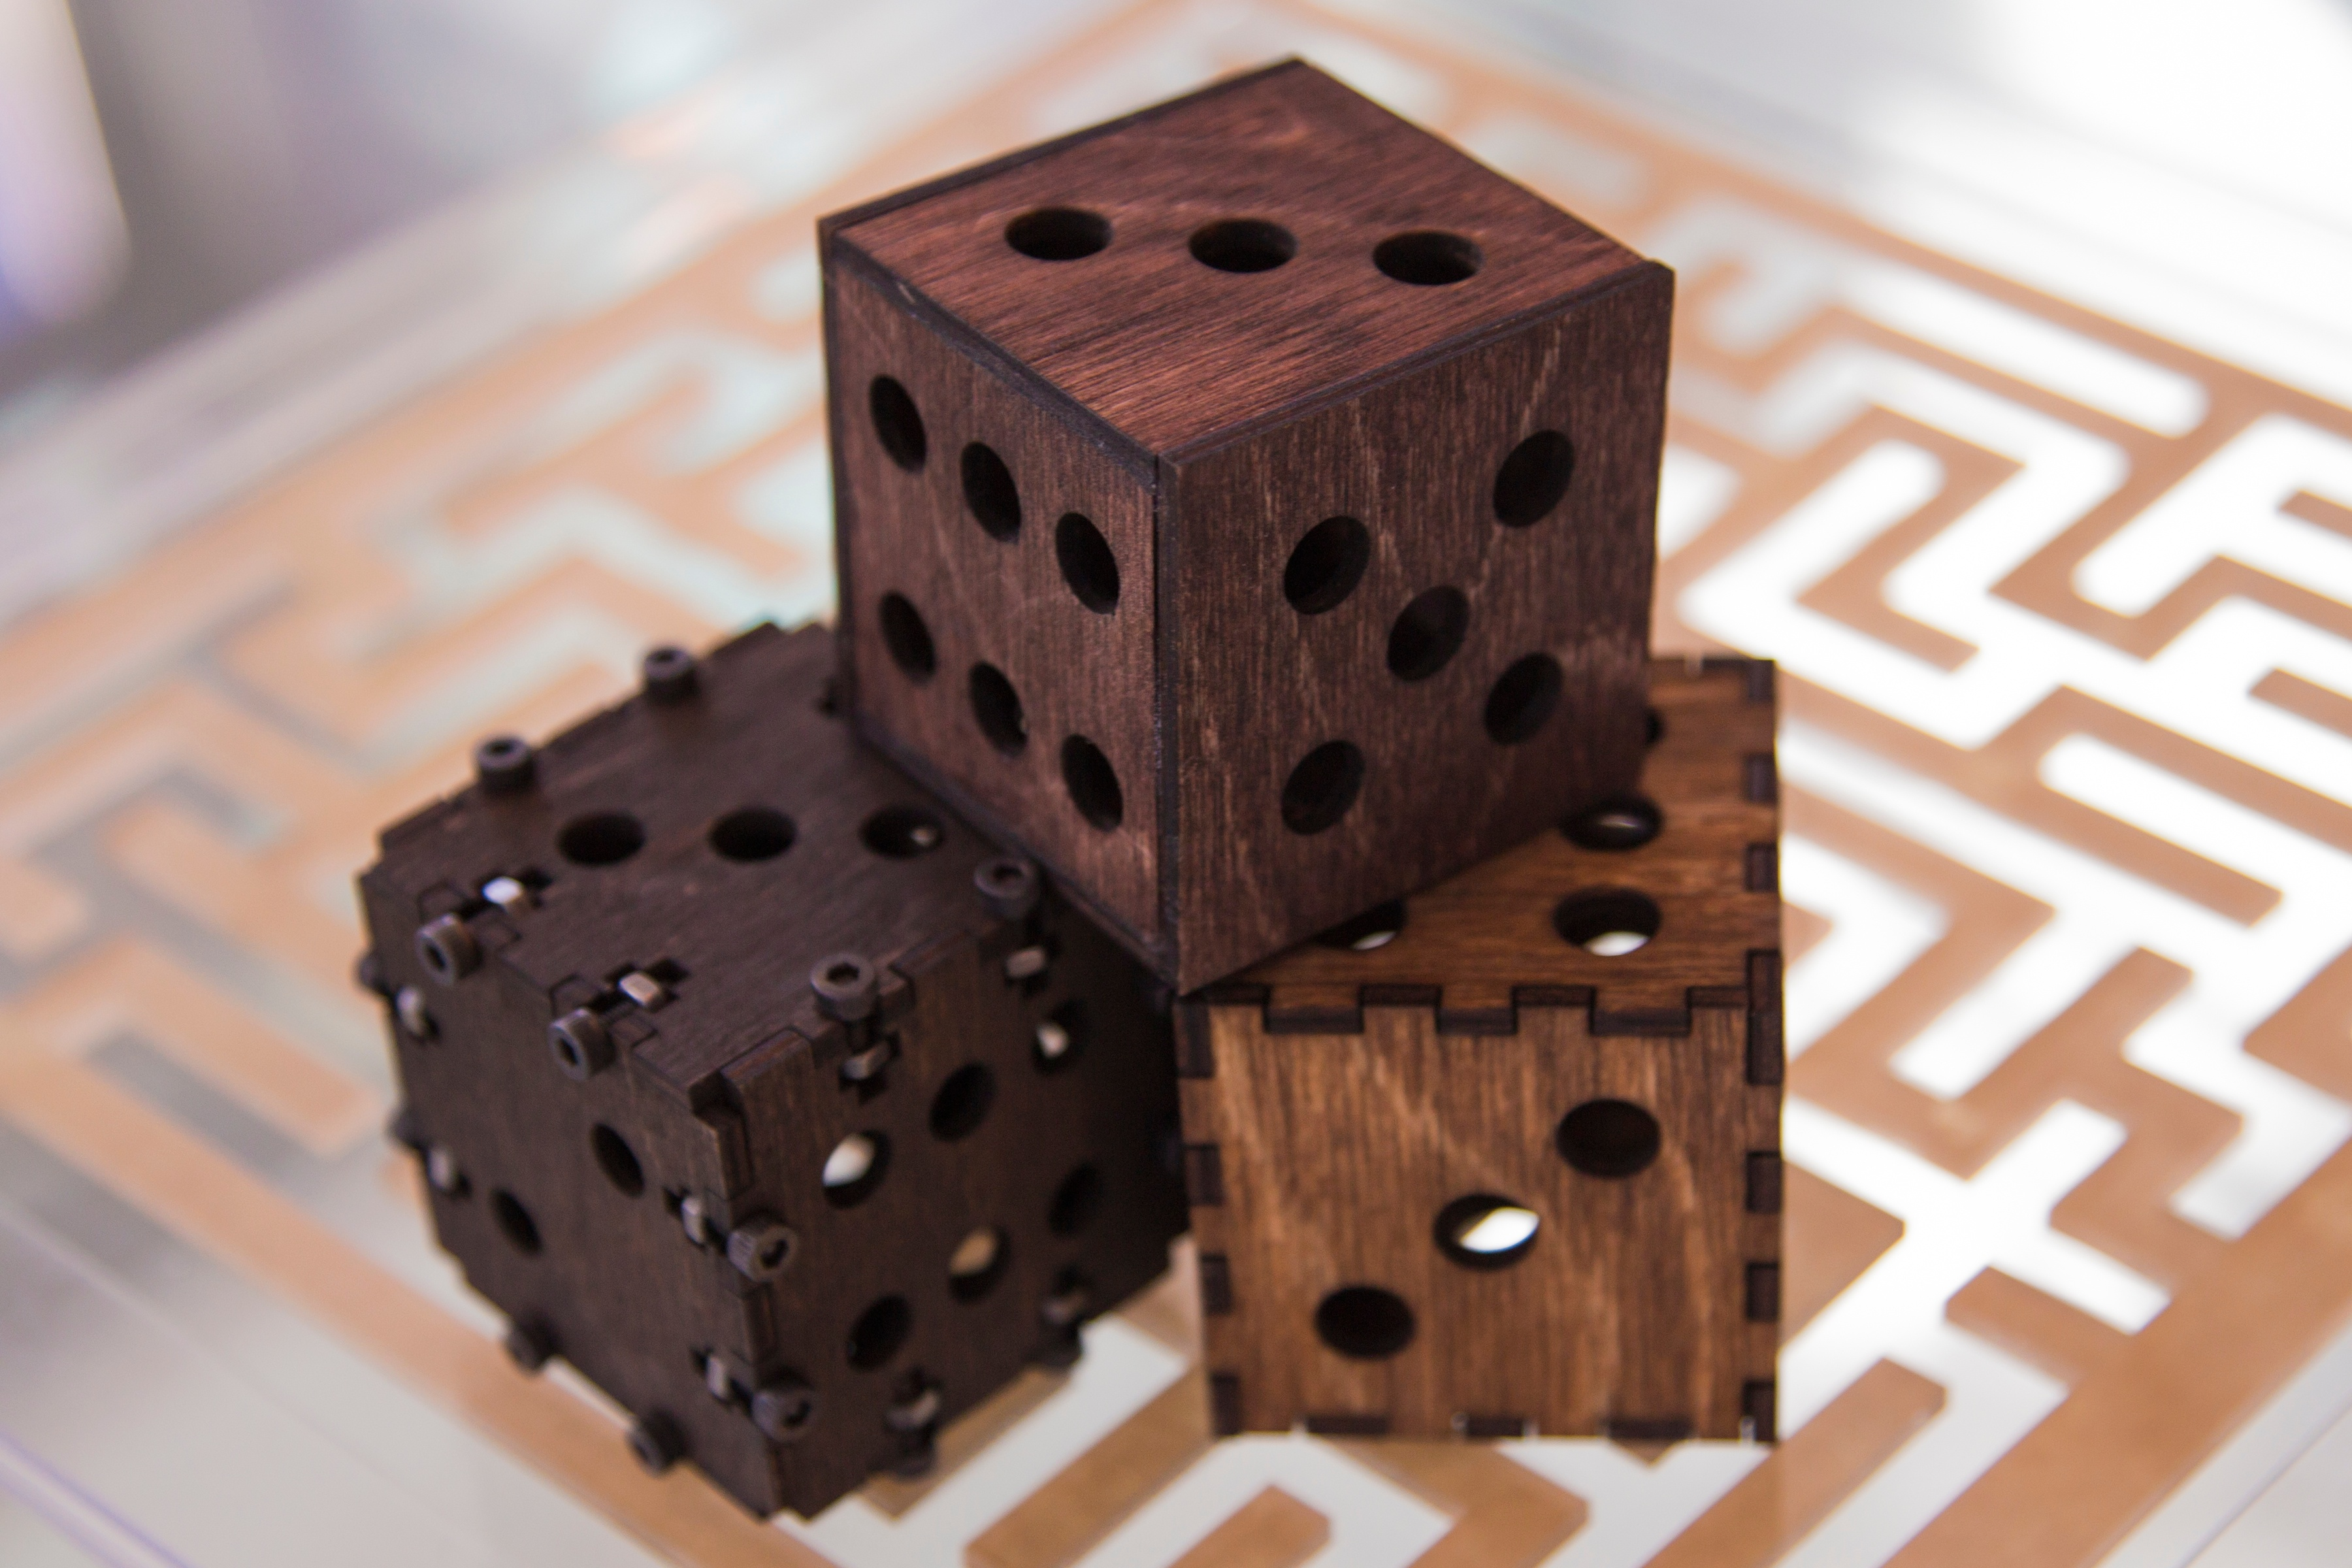 laser 101 fsl jointed dice Header_co2 laser cutter_Wood_cut_engrave_Watts_hobby_muse_pro.jpg